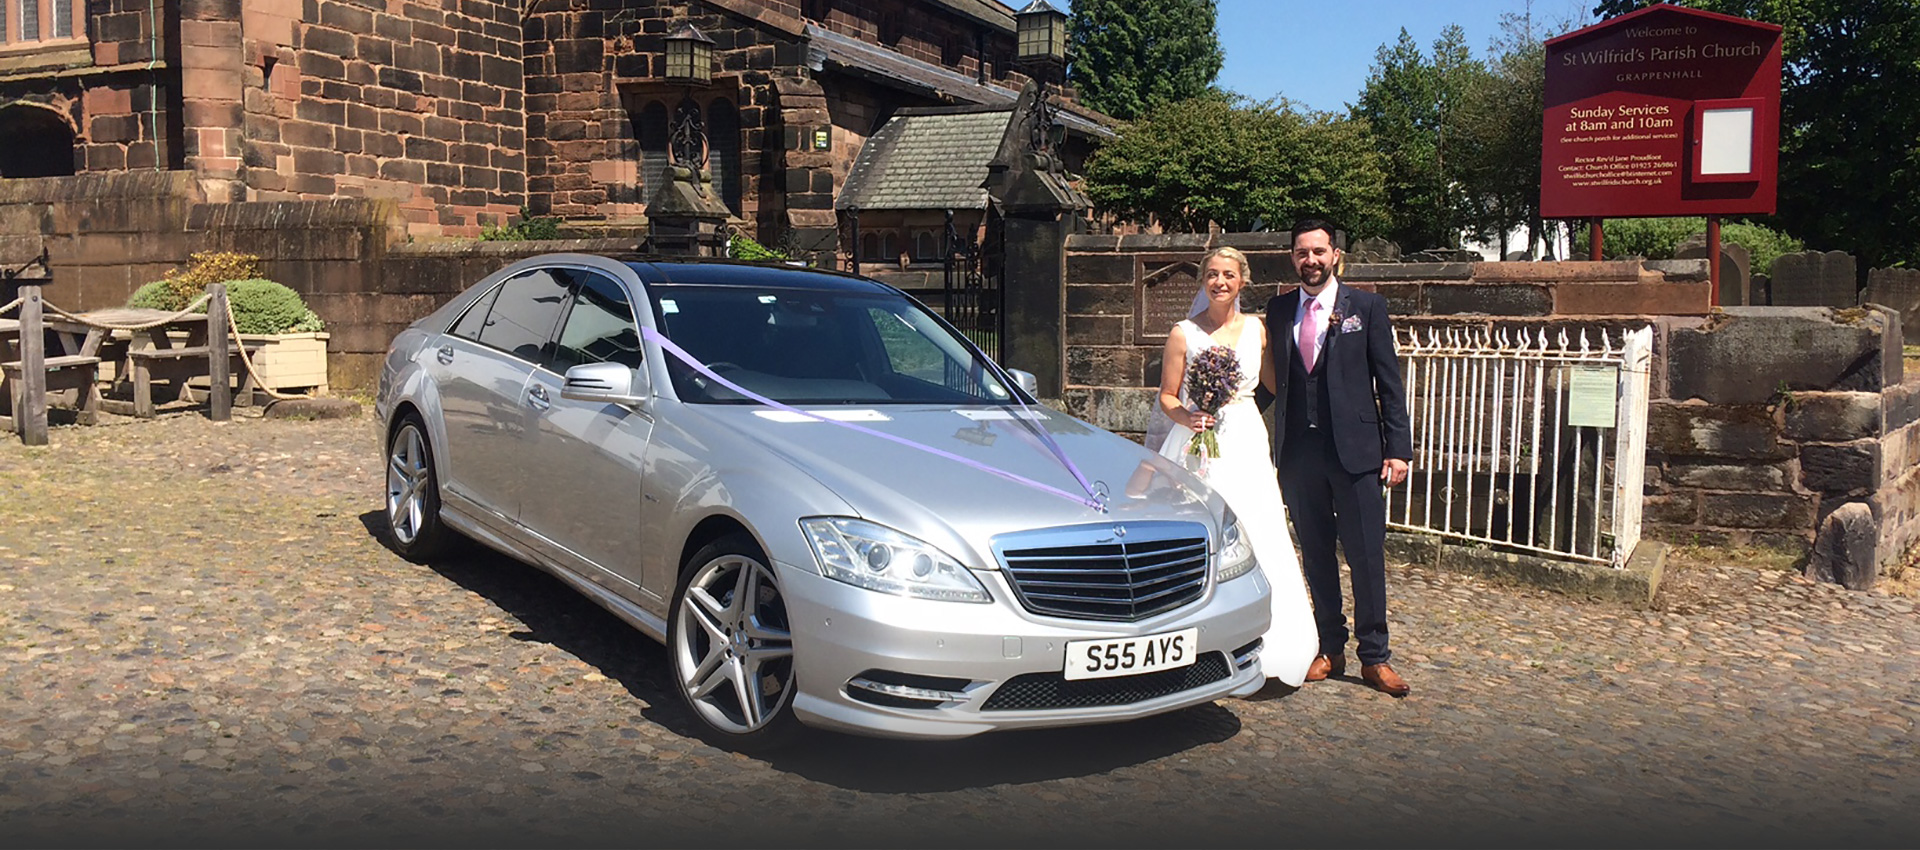 Wedding Cars Cheshire & Chester